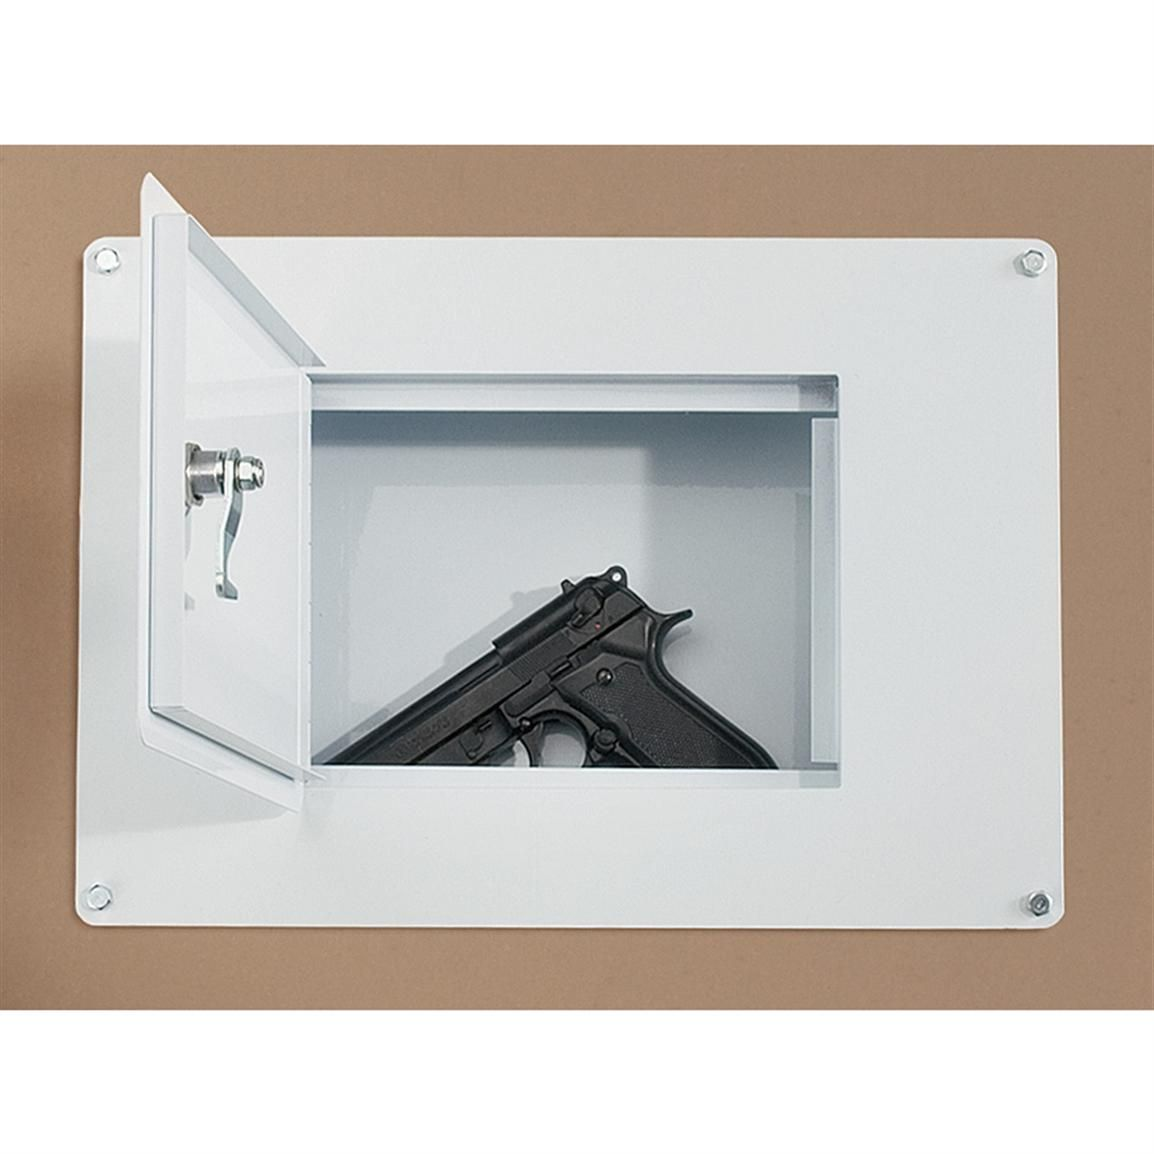 Homak Between the Studs Wall Safe | Wall safe, Guns and Craft